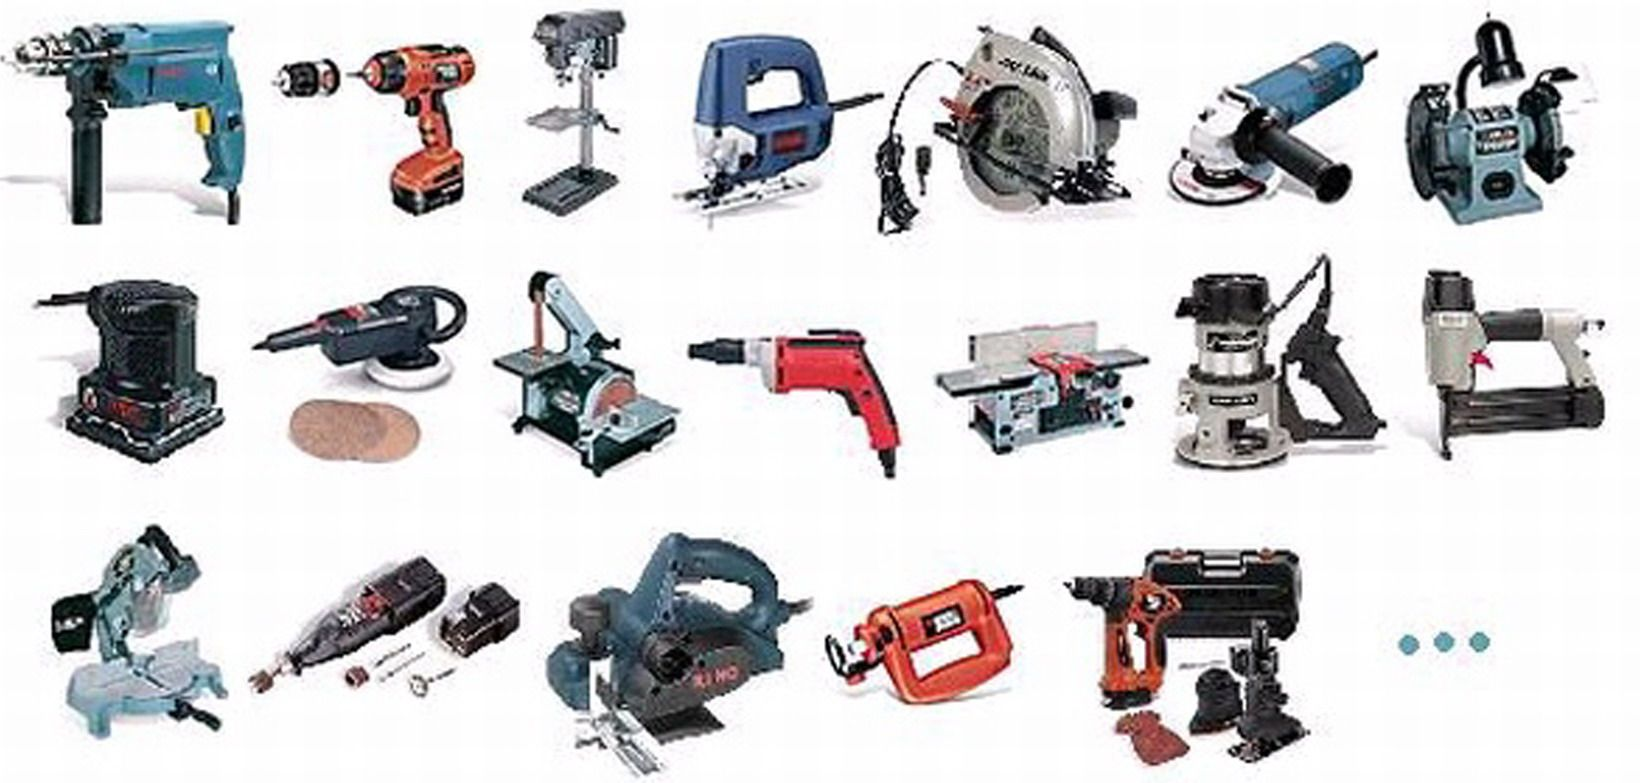 Power Tools Google Search Reference For My Room Ideas